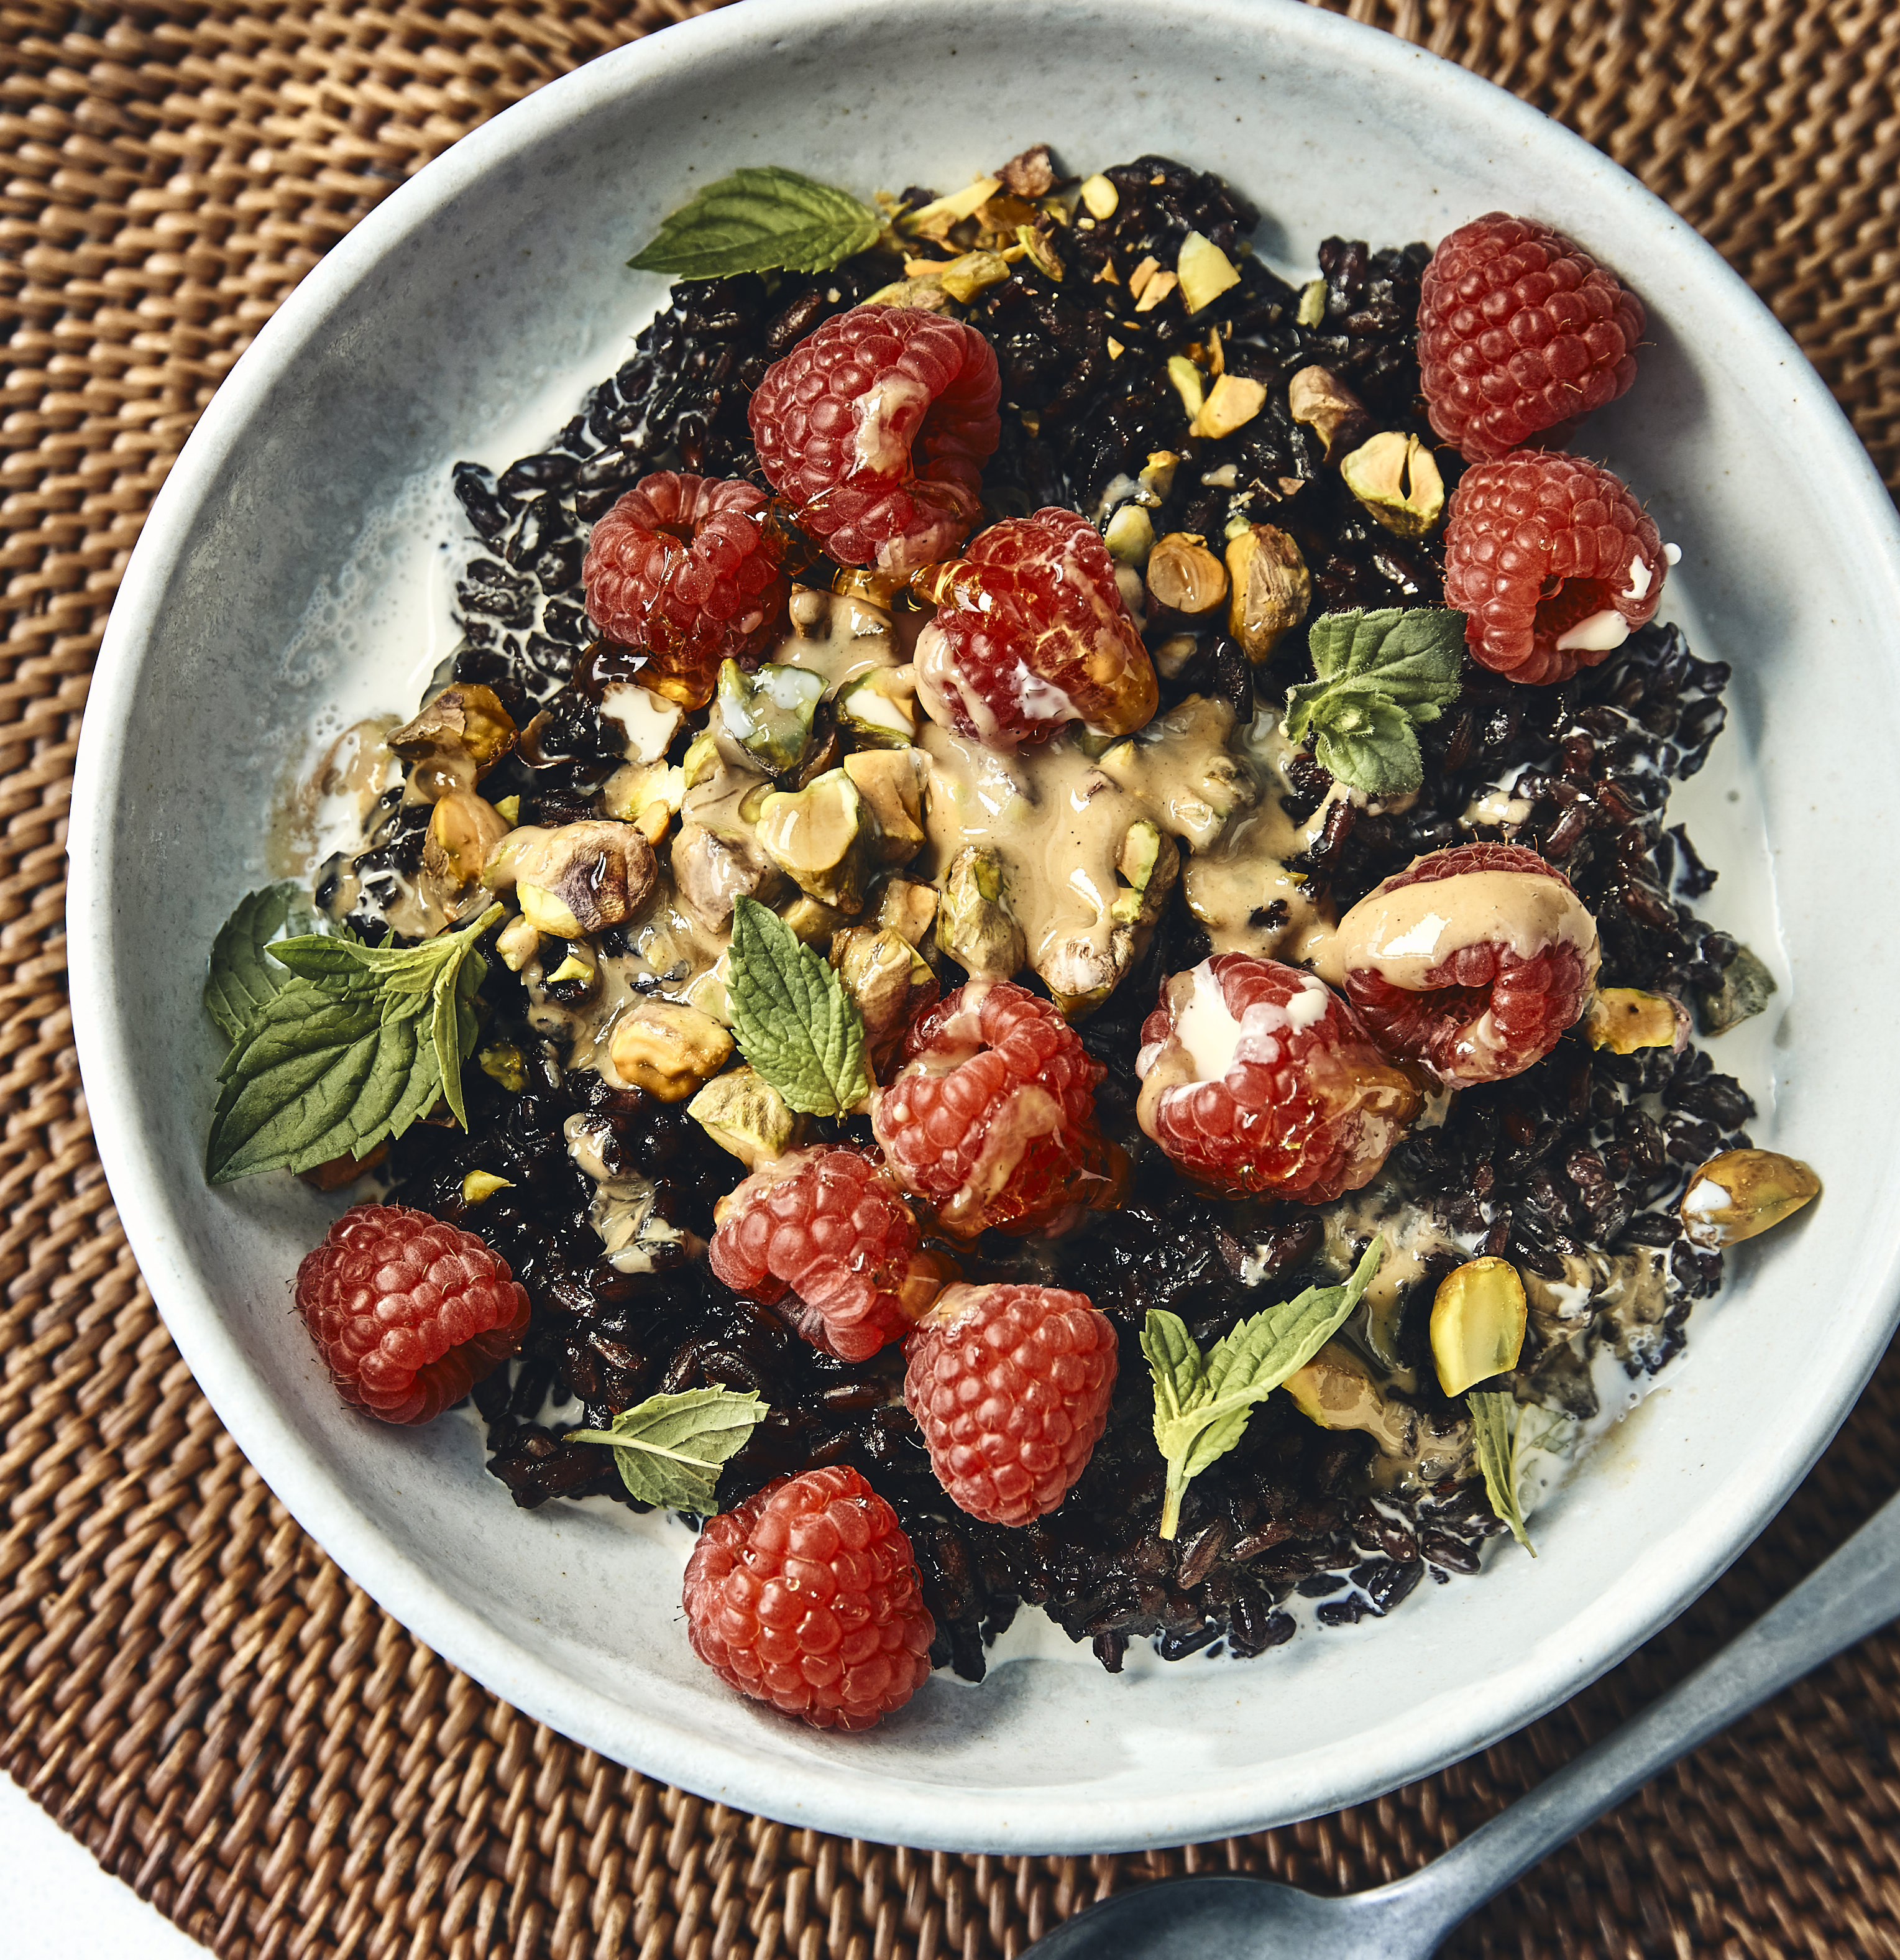 Black Rice Bowl With Tahini, PIstachios, and Raspberries